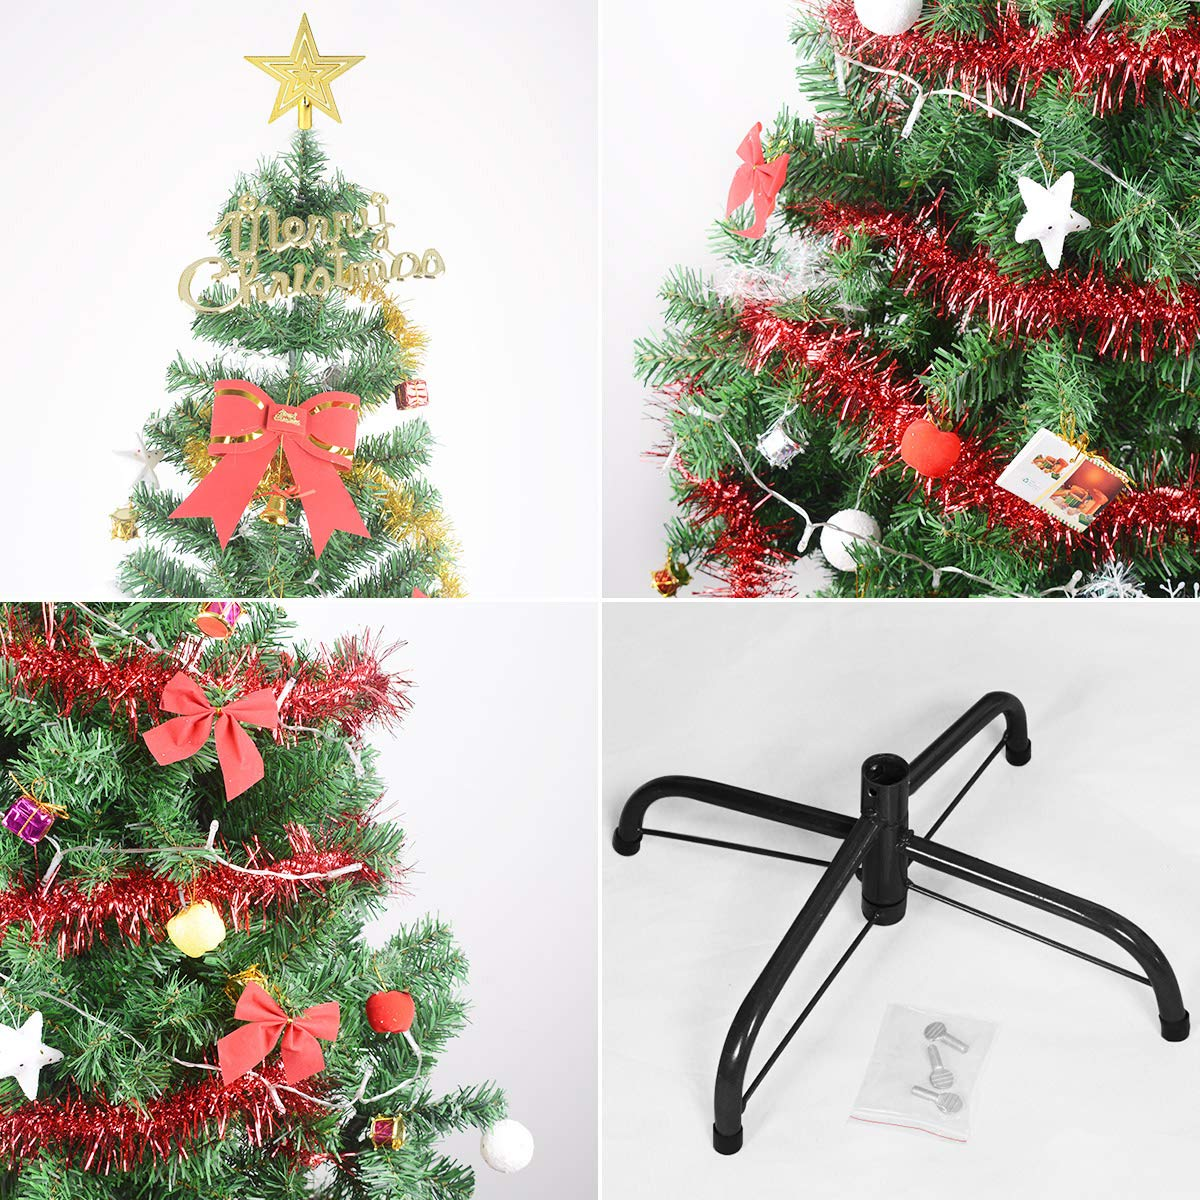 PVC Atificial Christmas Tree 5.9Feet//1.8M Green Gift Hunter SD-0015 LED Lights/&Decoration 5.9 ft ABJ